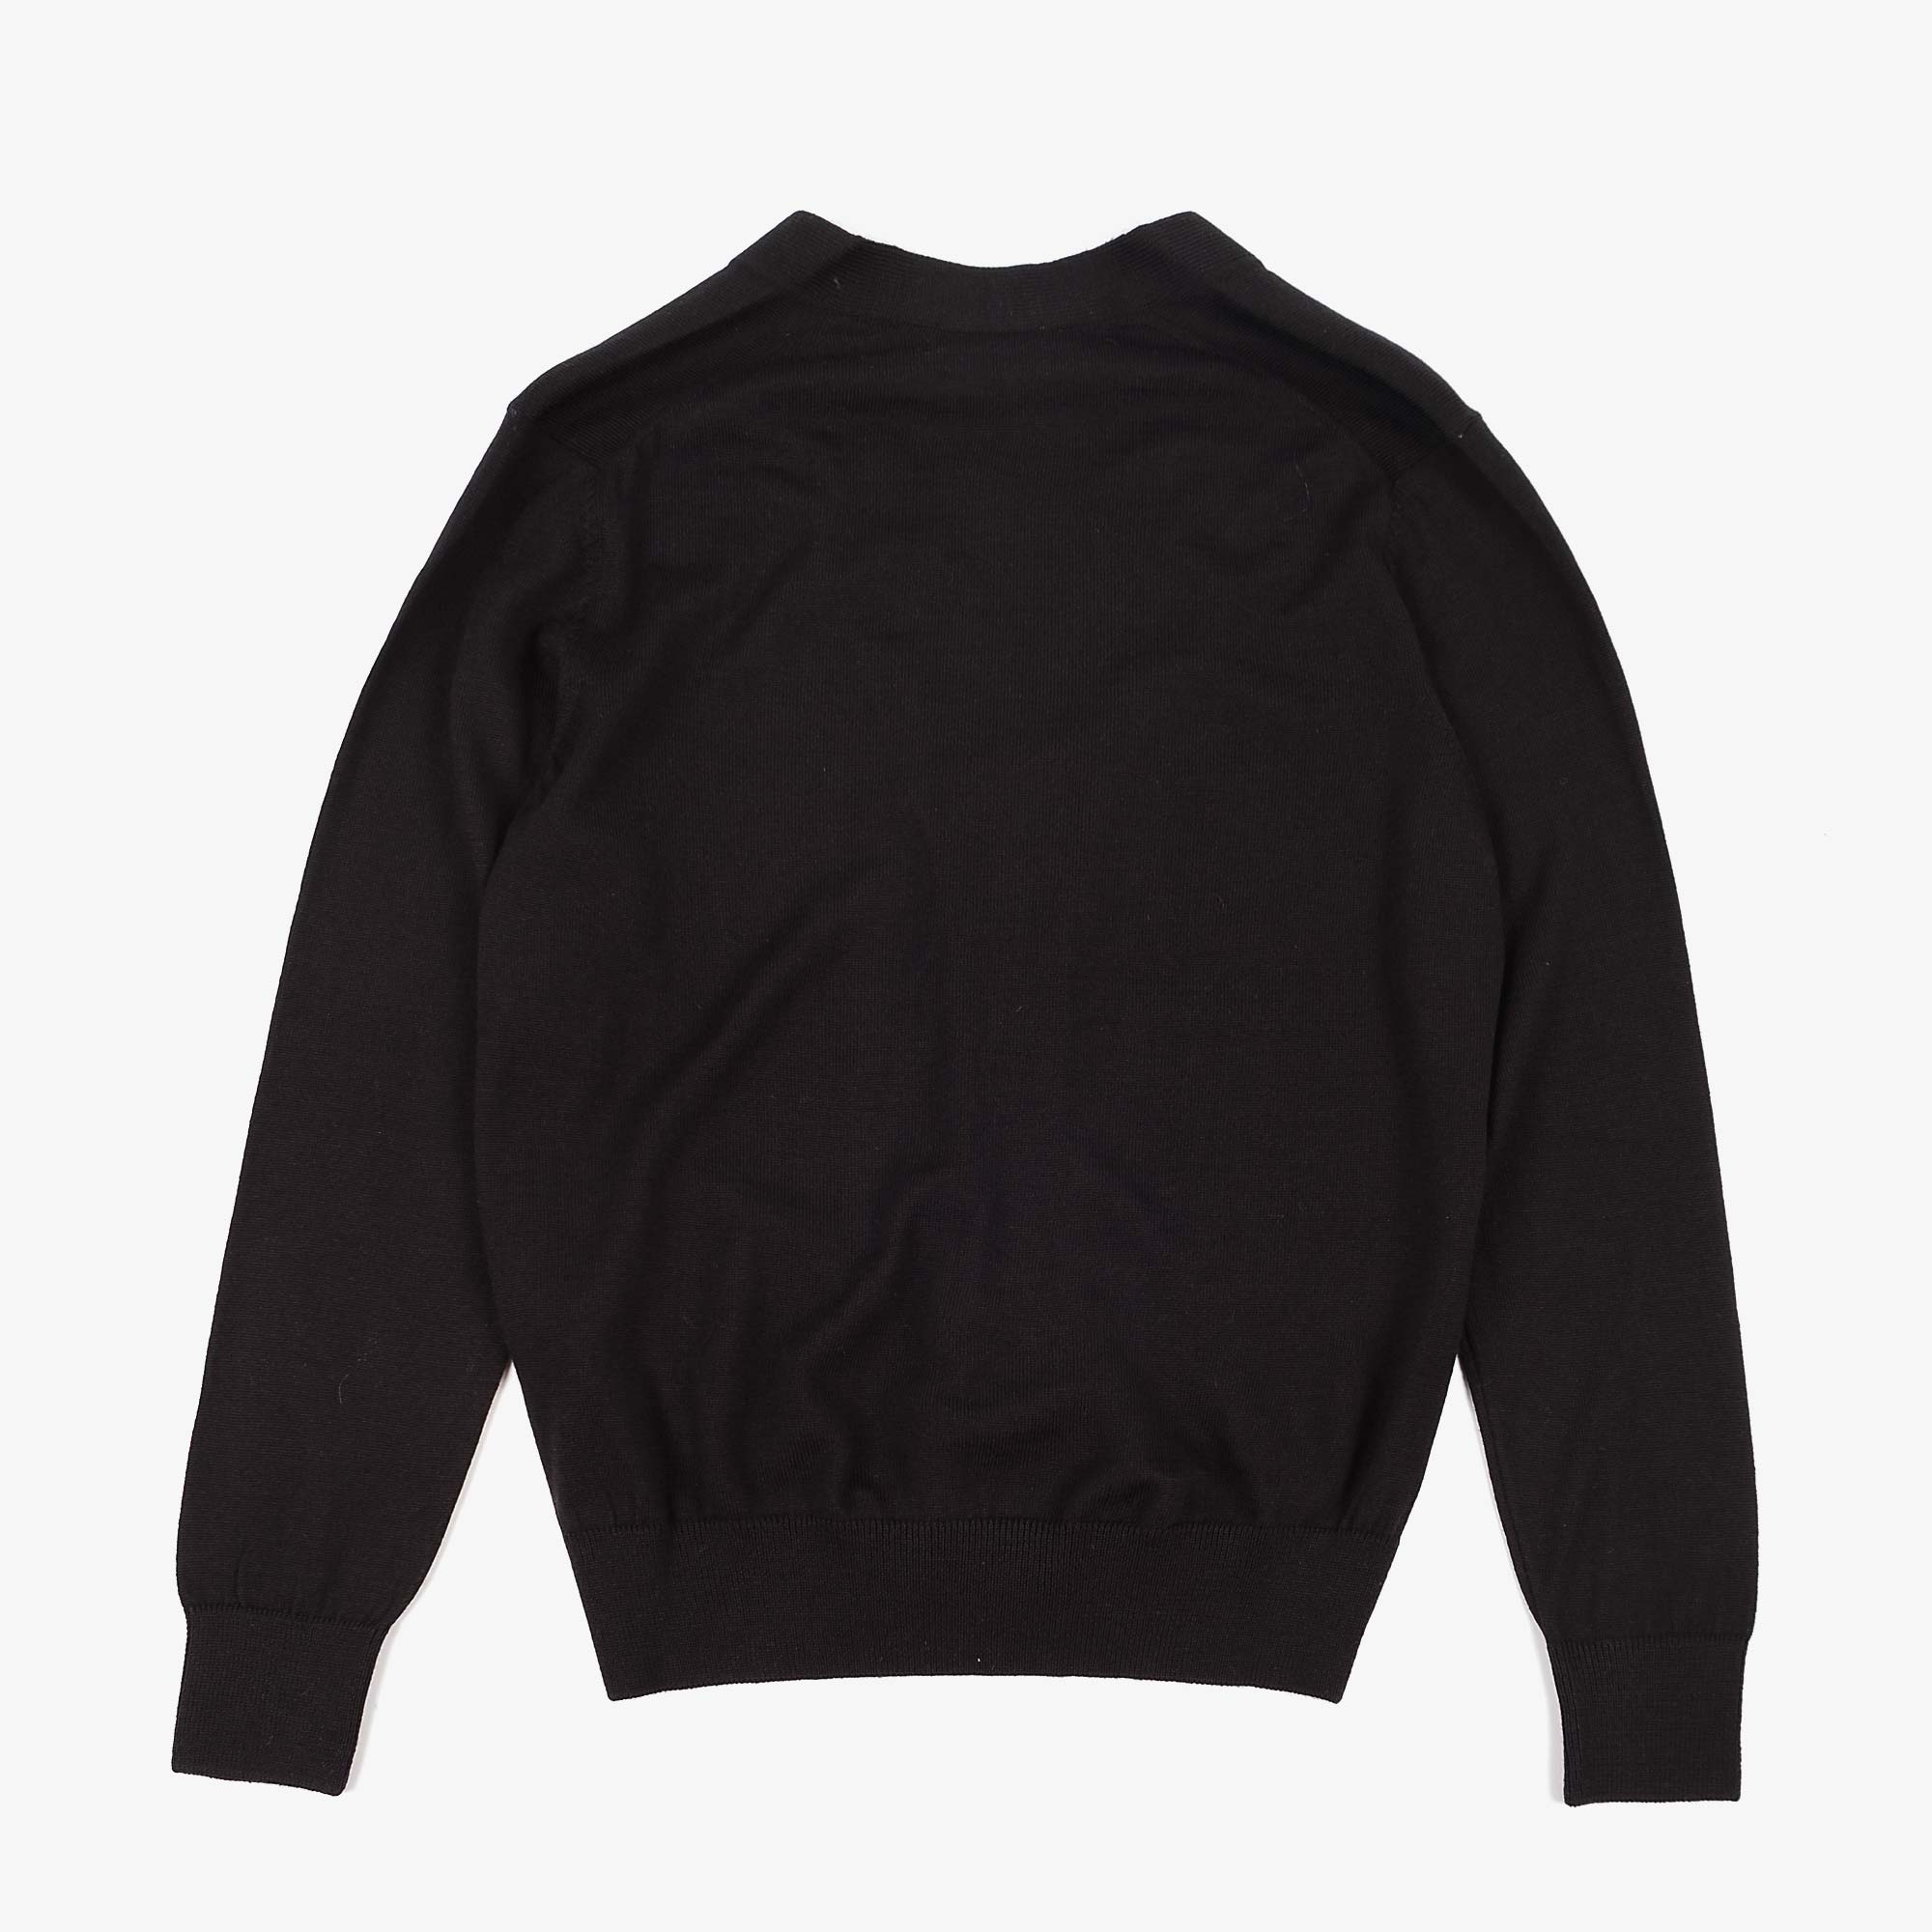 Maison Kitsune Mens Tricolour Fox Patch Merino Cardigan - Black 4